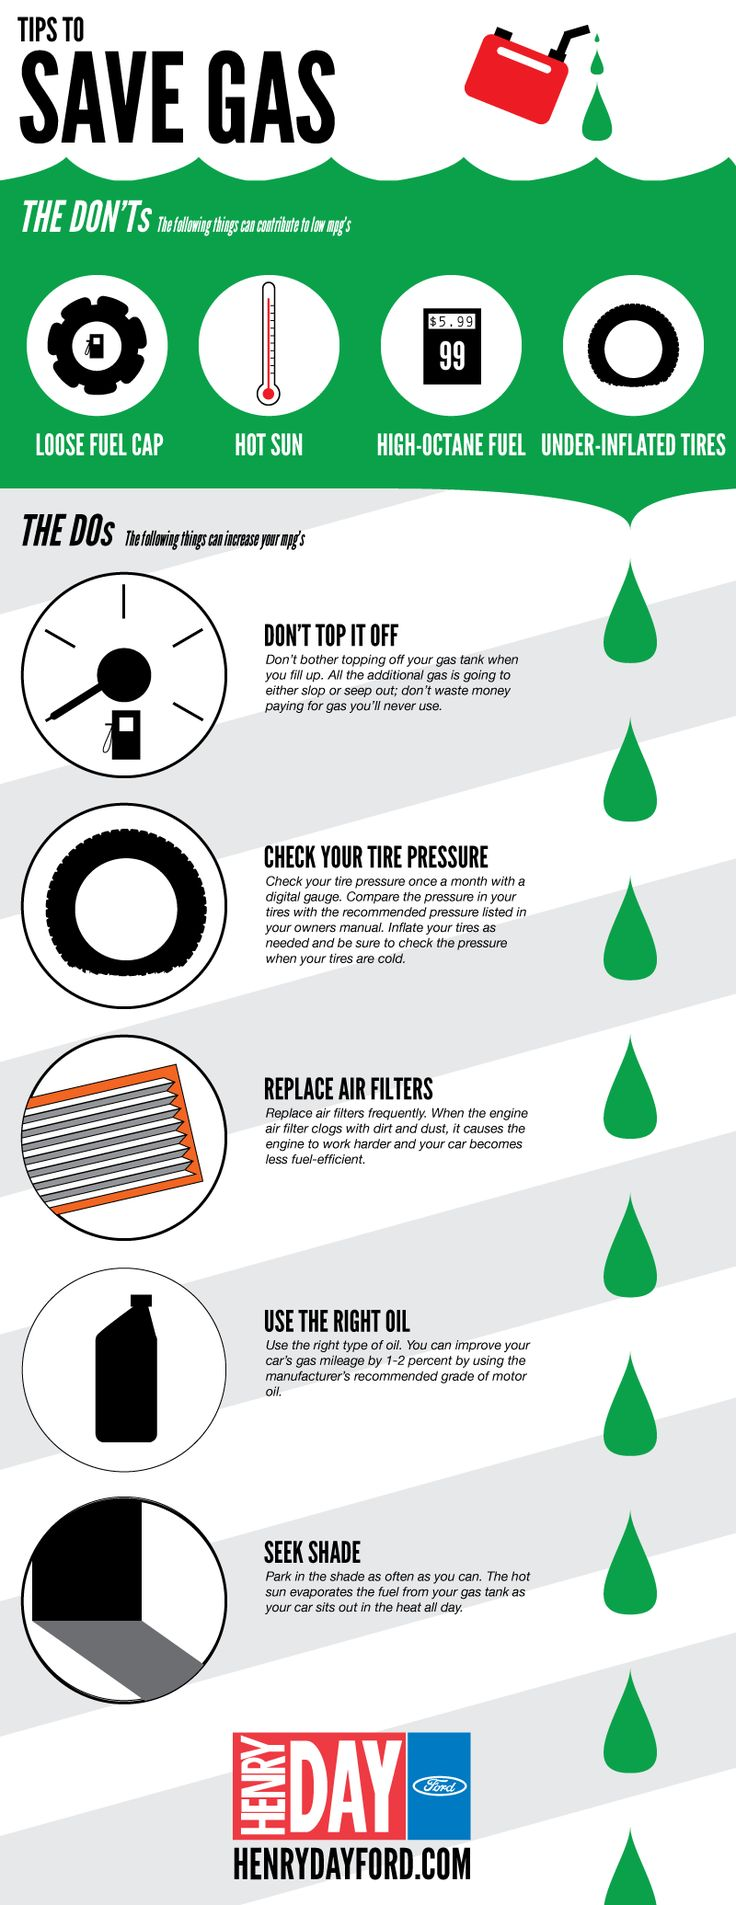 How to use less gas 21 genius car cheat sheets every driver needs to see